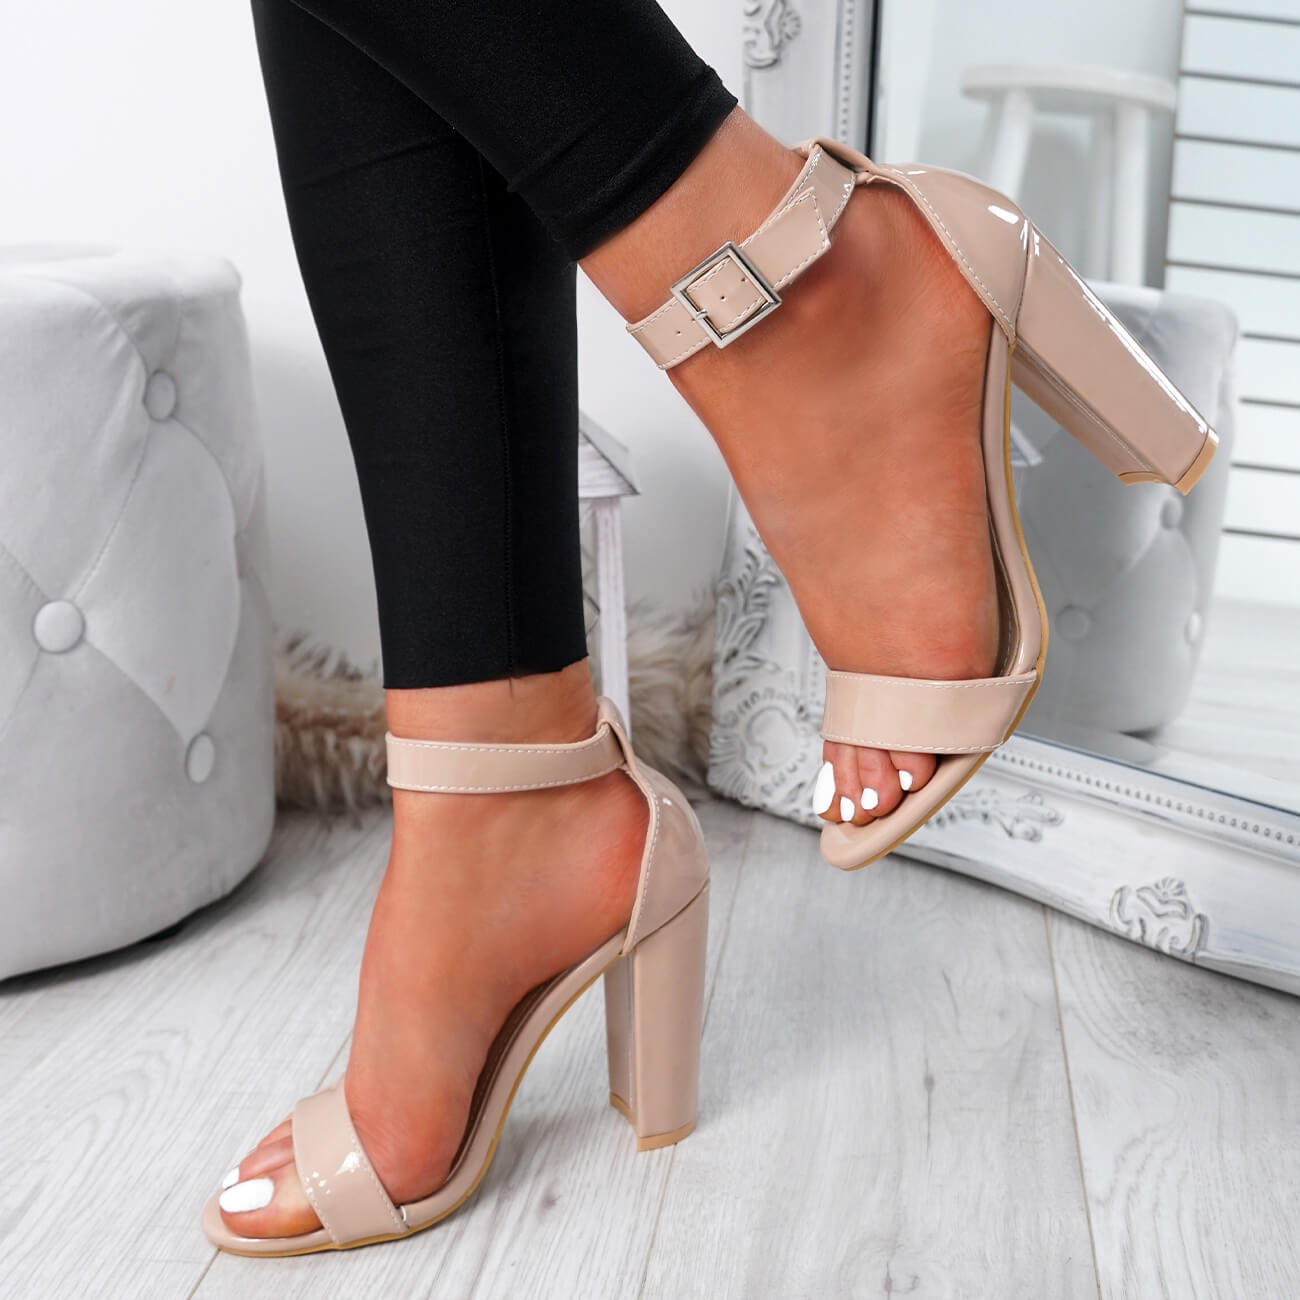 WOMENS-LADIES-HIGH-BLOCK-HEEL-PARTY-SANDALS-PEEP-TOE-ANKLE-STRAP-SHOES-SIZE-UK thumbnail 8